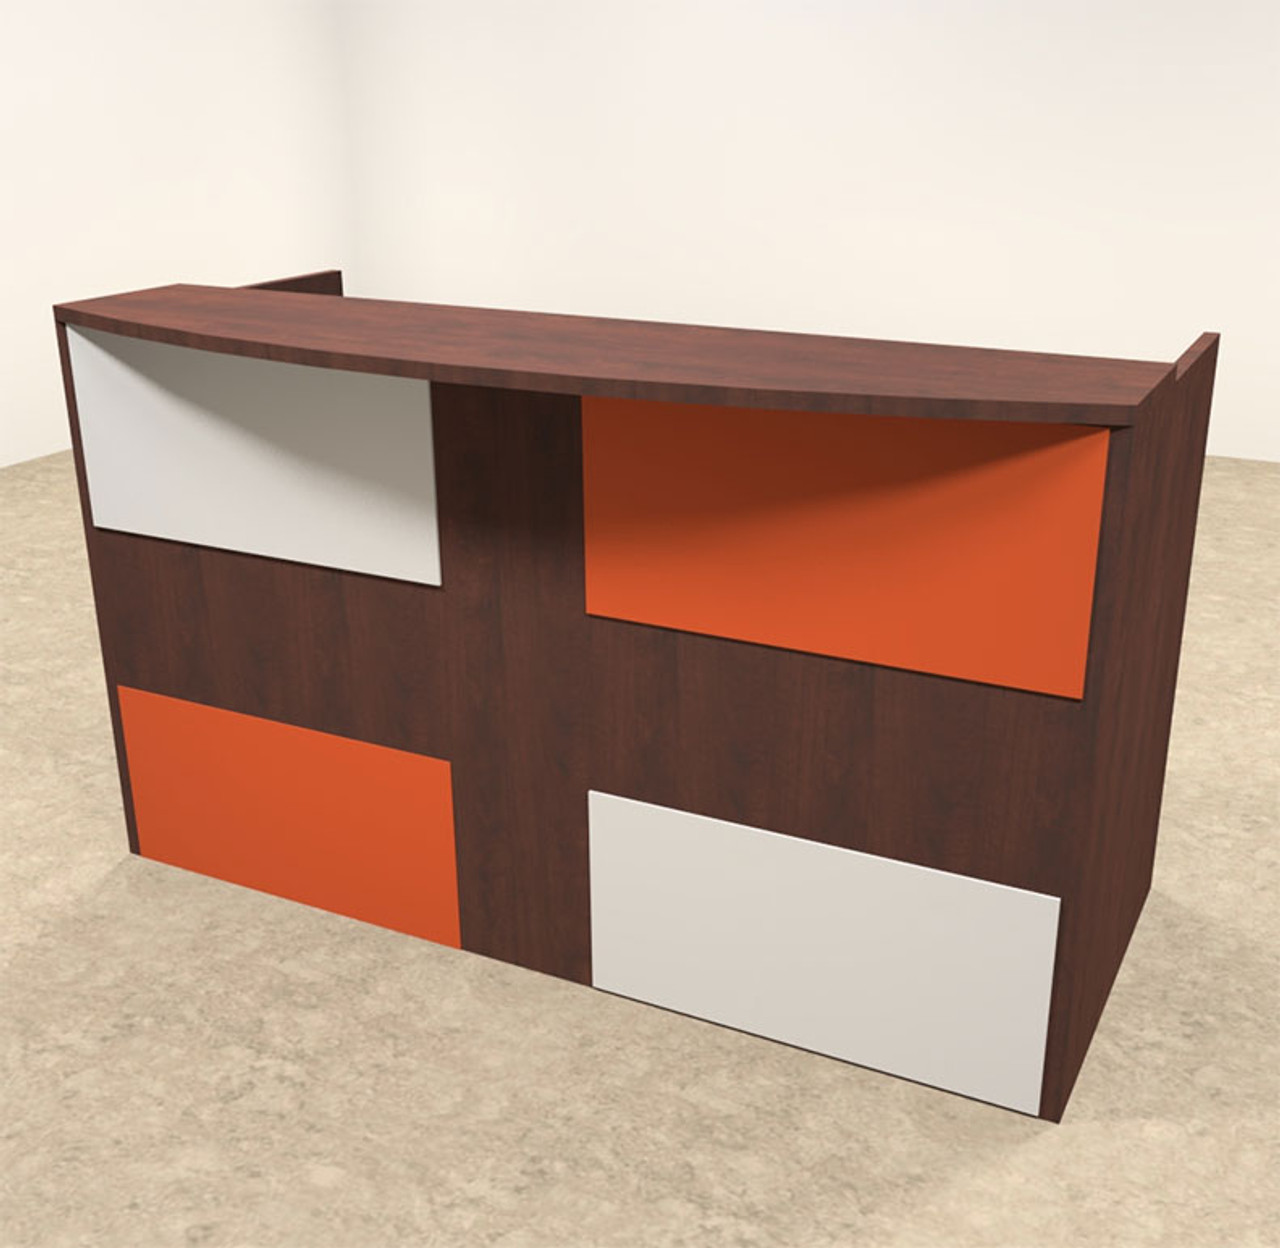 2pc Rectangular Modern Acrylic Panel Office Reception Desk, #OT-SUL-RM38